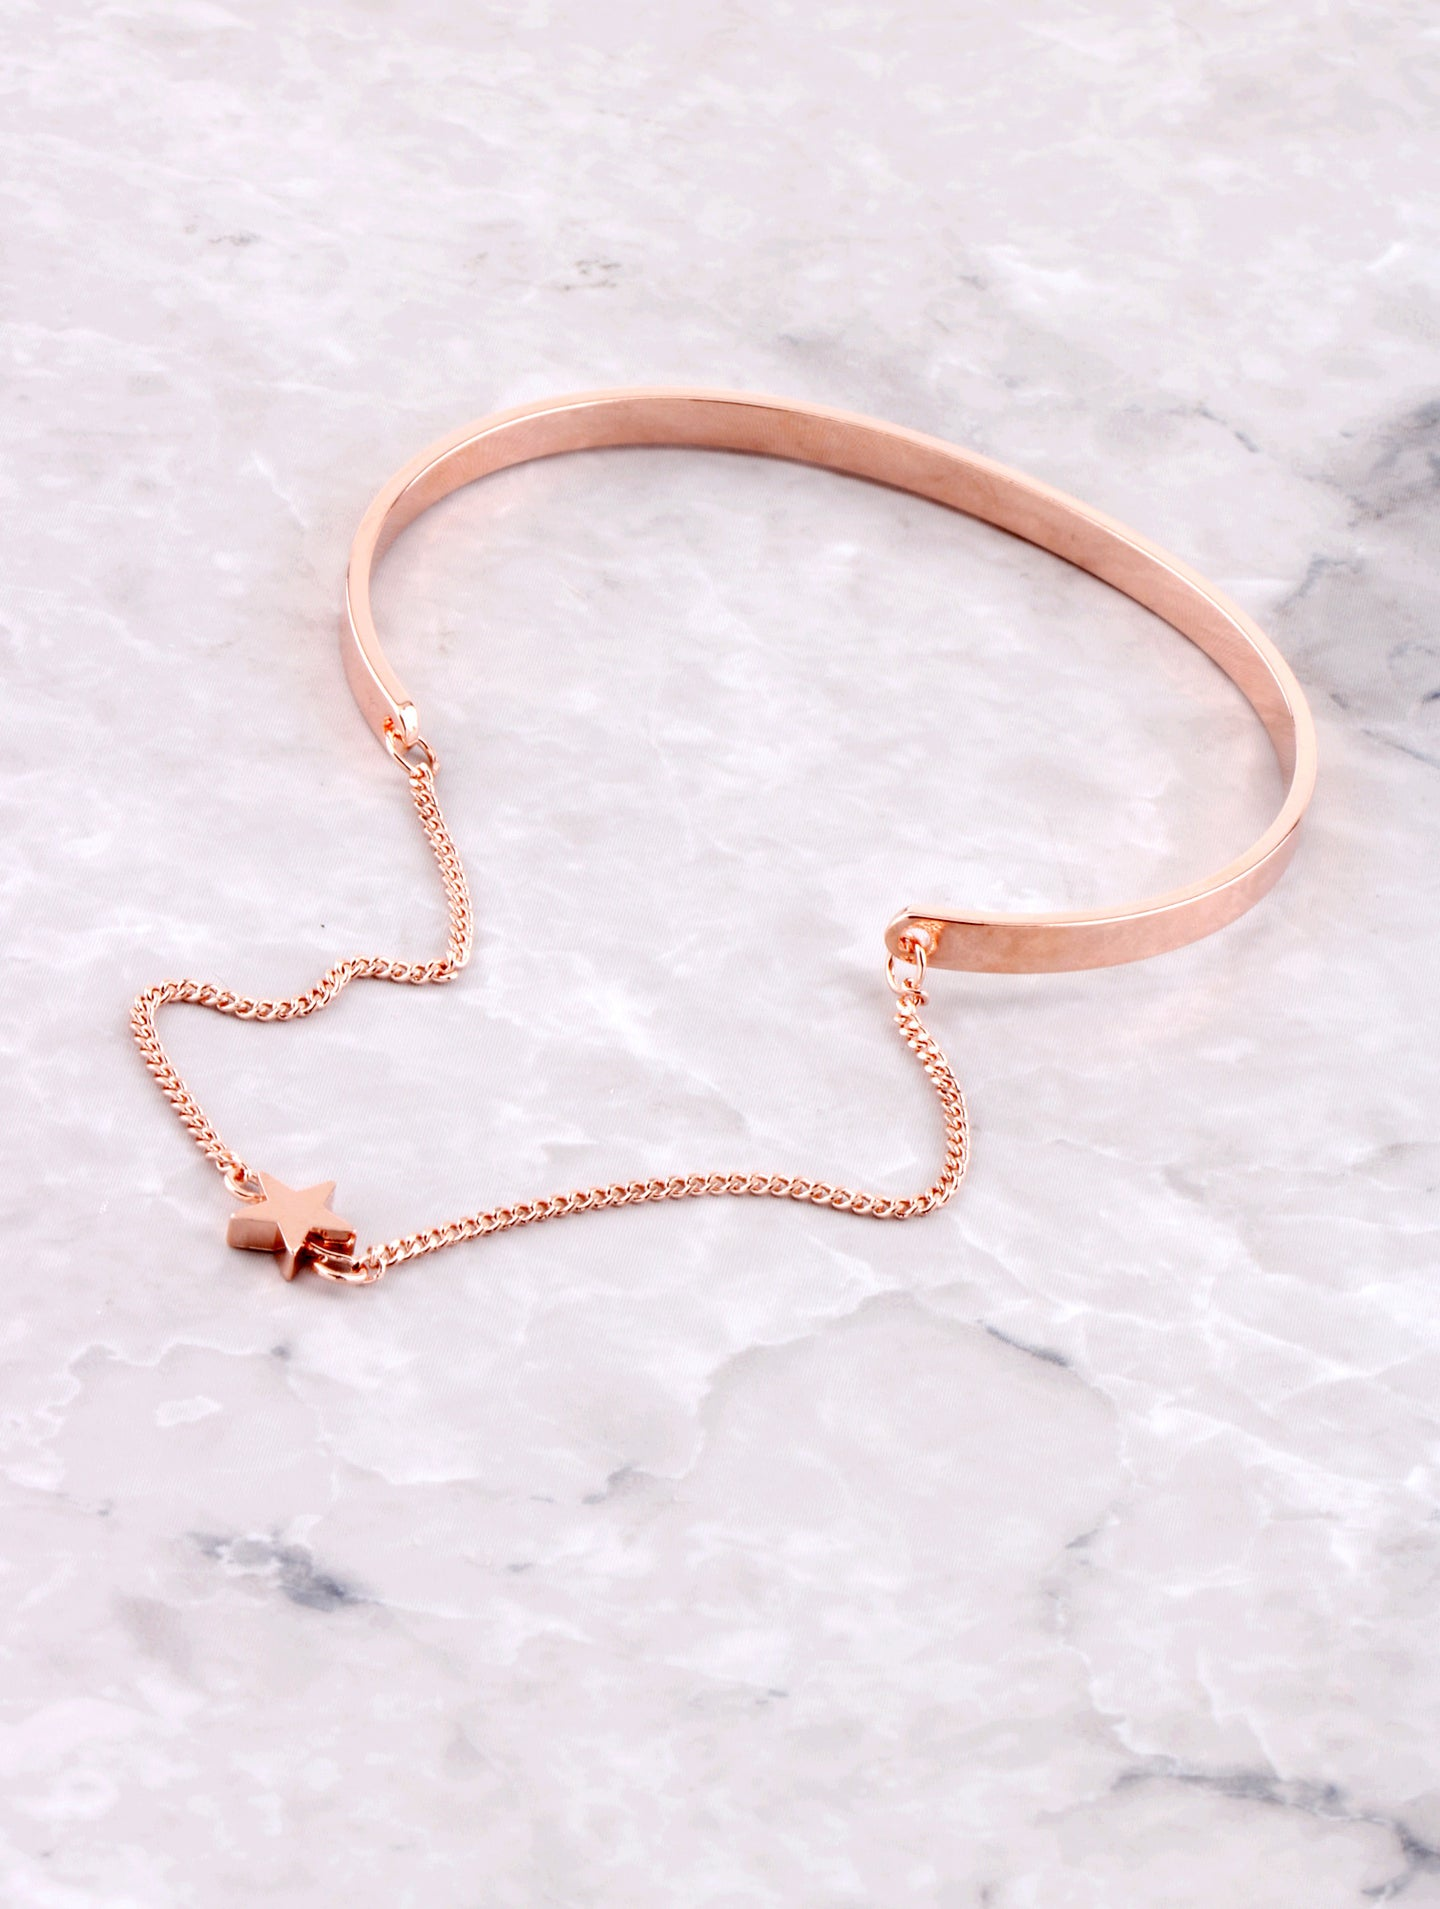 Hanging Chain Cuff Bracelet Anarchy Street Rosegold Star